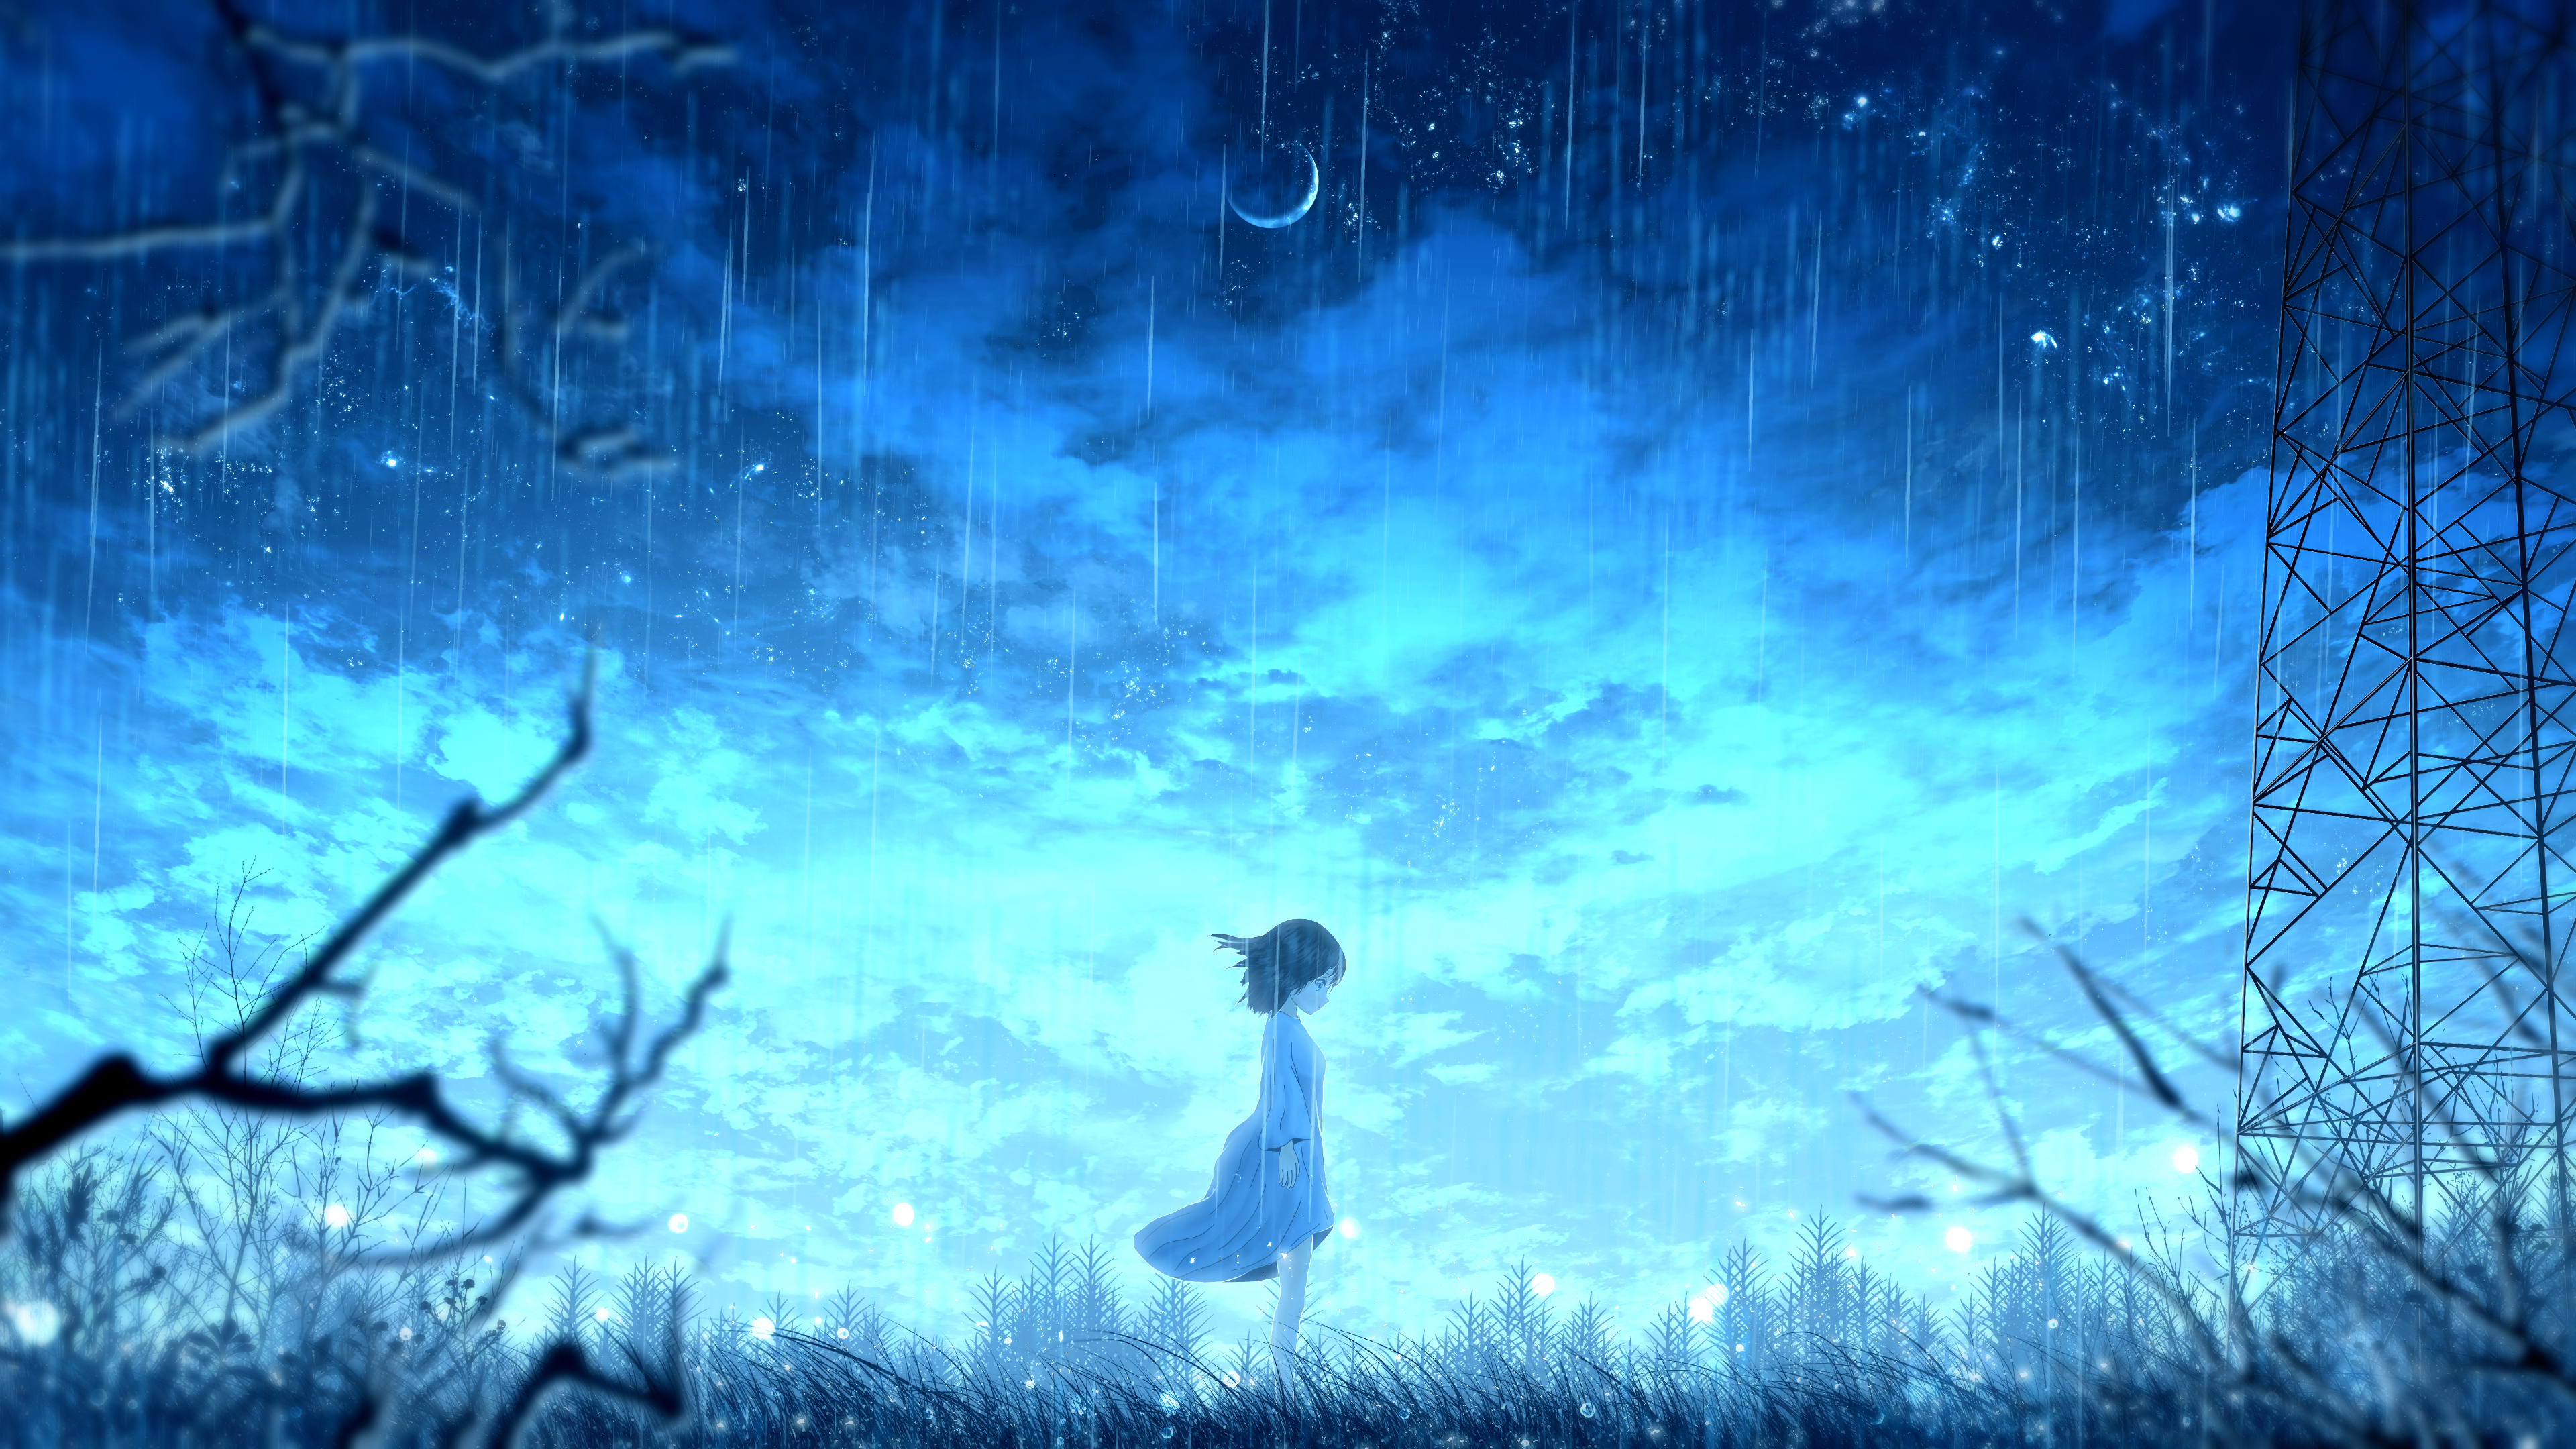 Japanese animation (known as anime in the west) has gone from a niche, geeky interest to a mainstream juggernaut enjoyed by people all over the world. 1440x2560 Anime Girl Night Rain 4k Samsung Galaxy S6,S7 ...